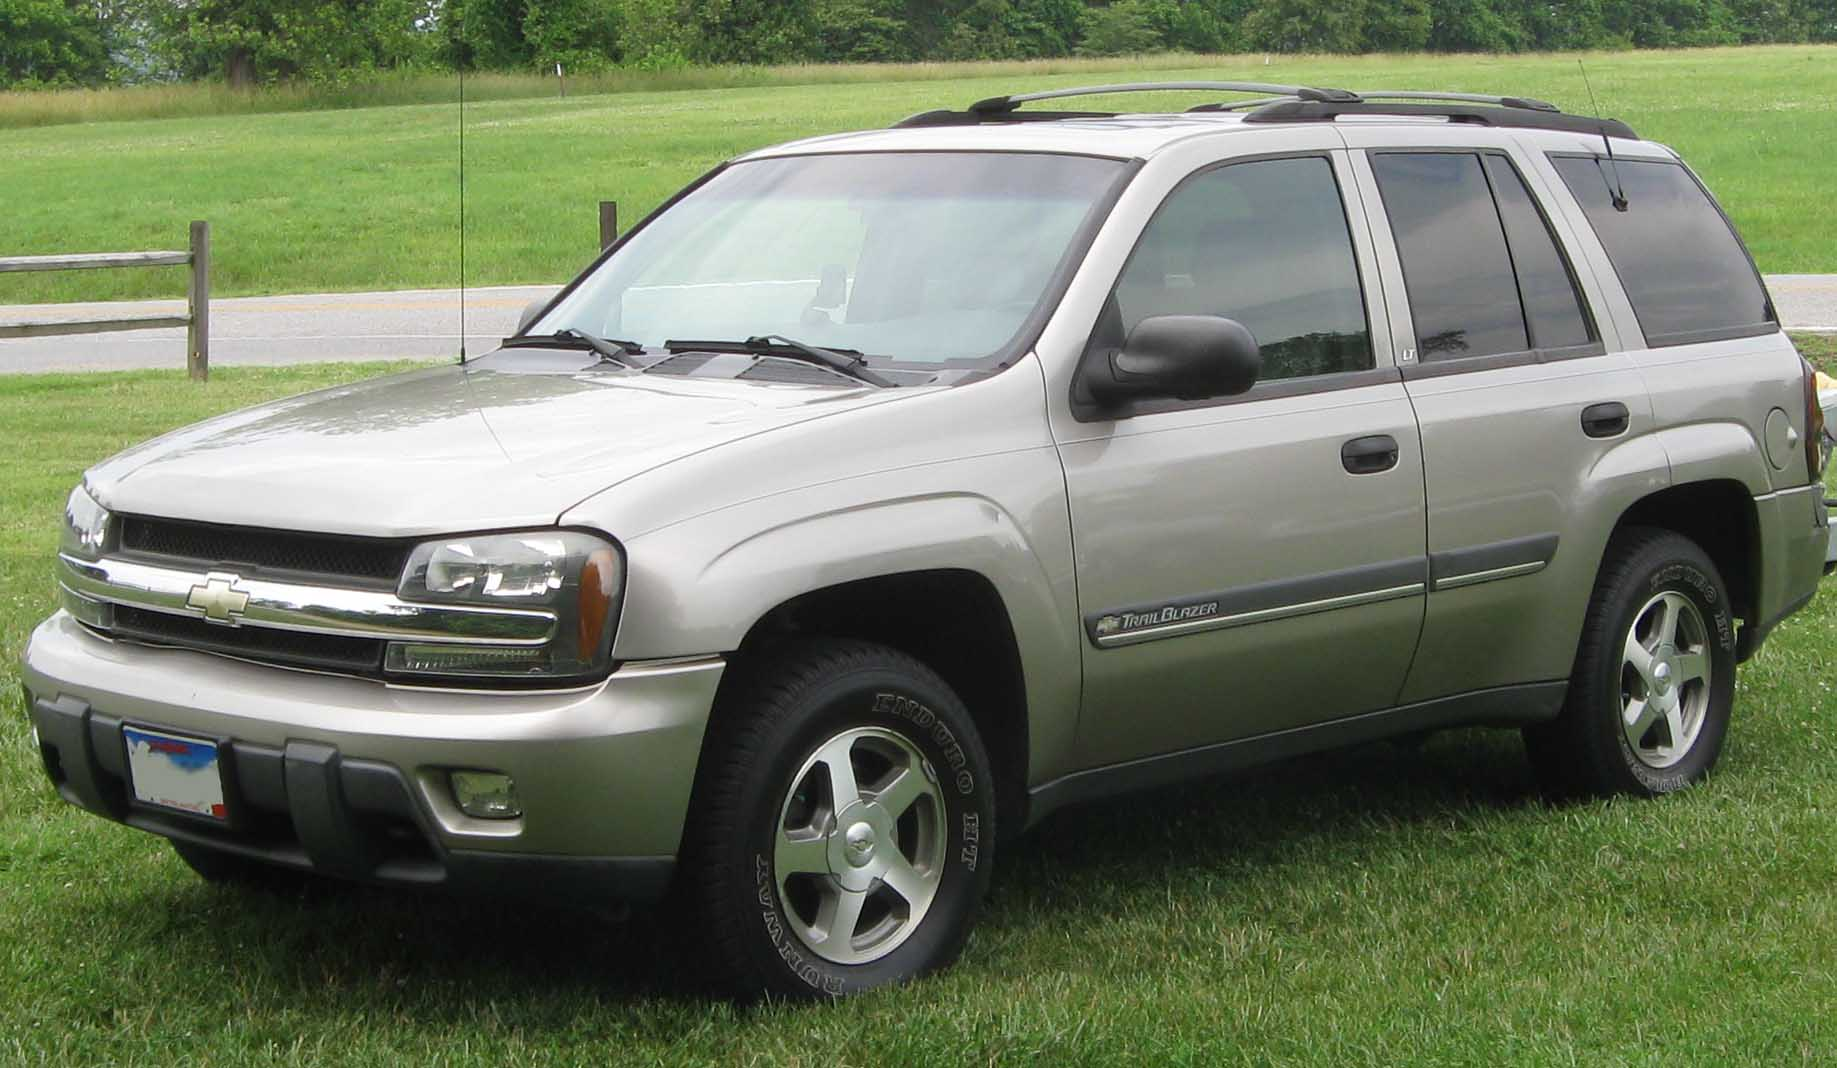 2005 Chevrolet Trailblazer Front Suspension Diagram Wiring Diagram